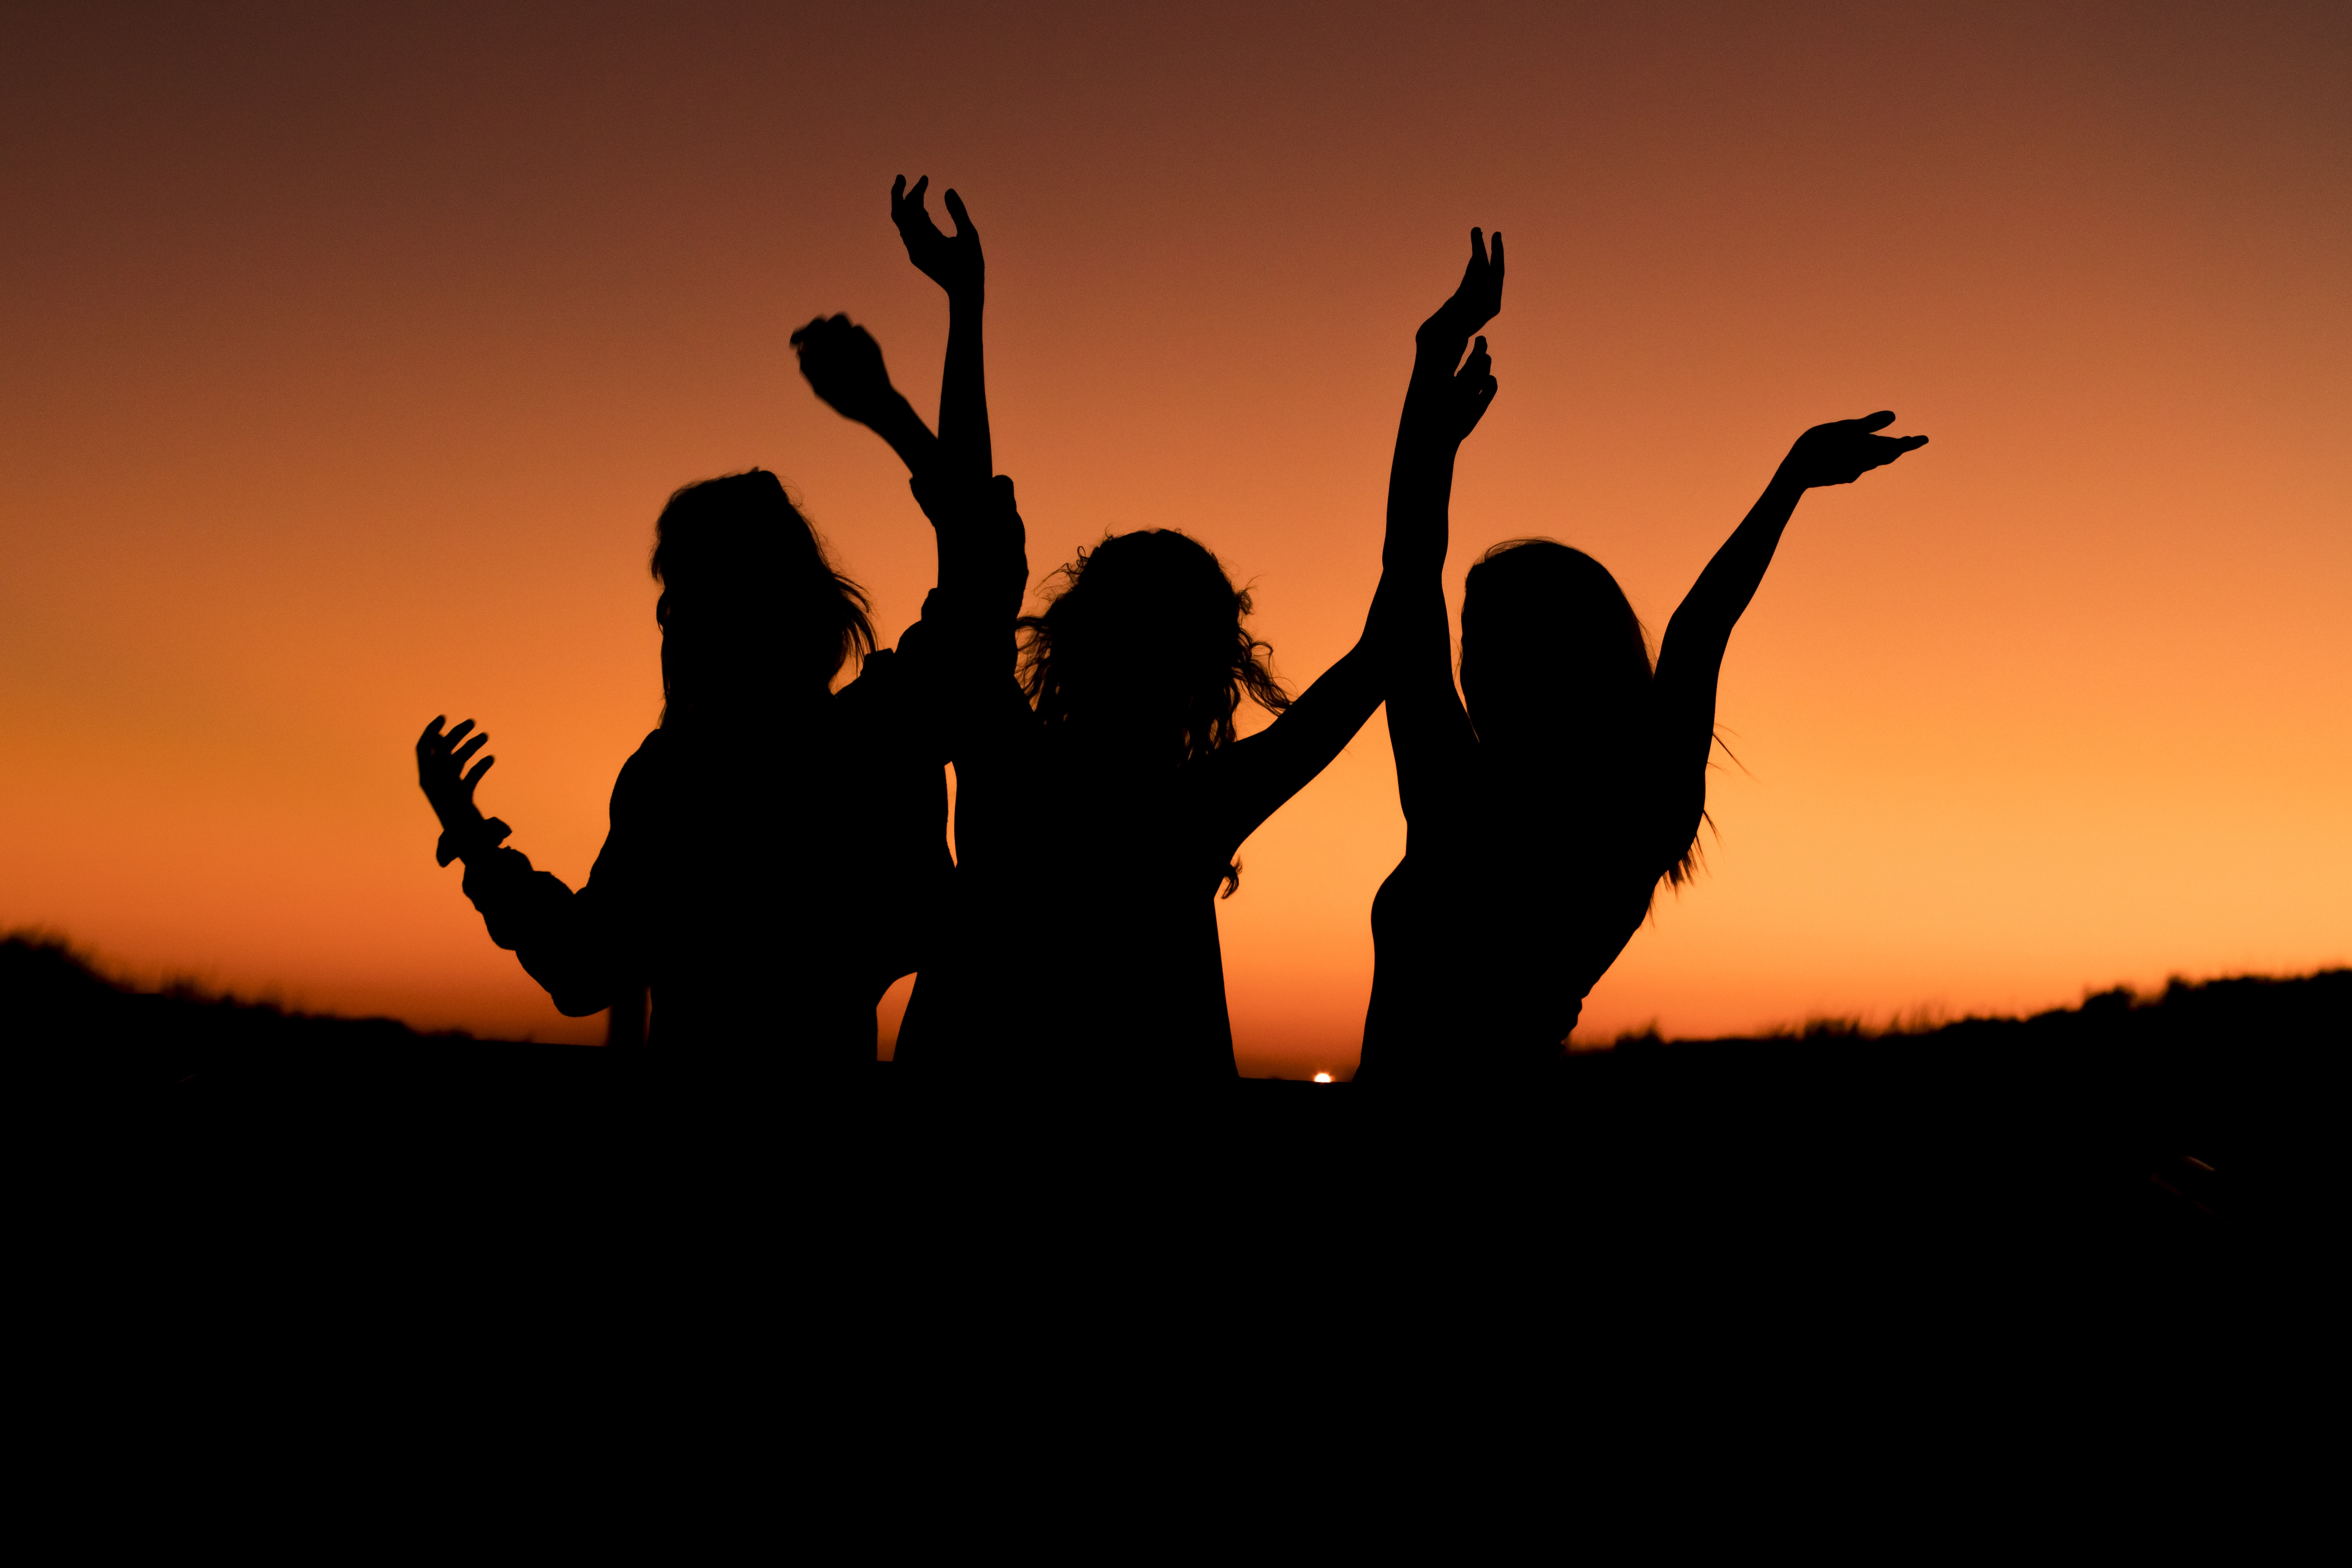 Silhouette of a group of friends celebrating in an orange sunset